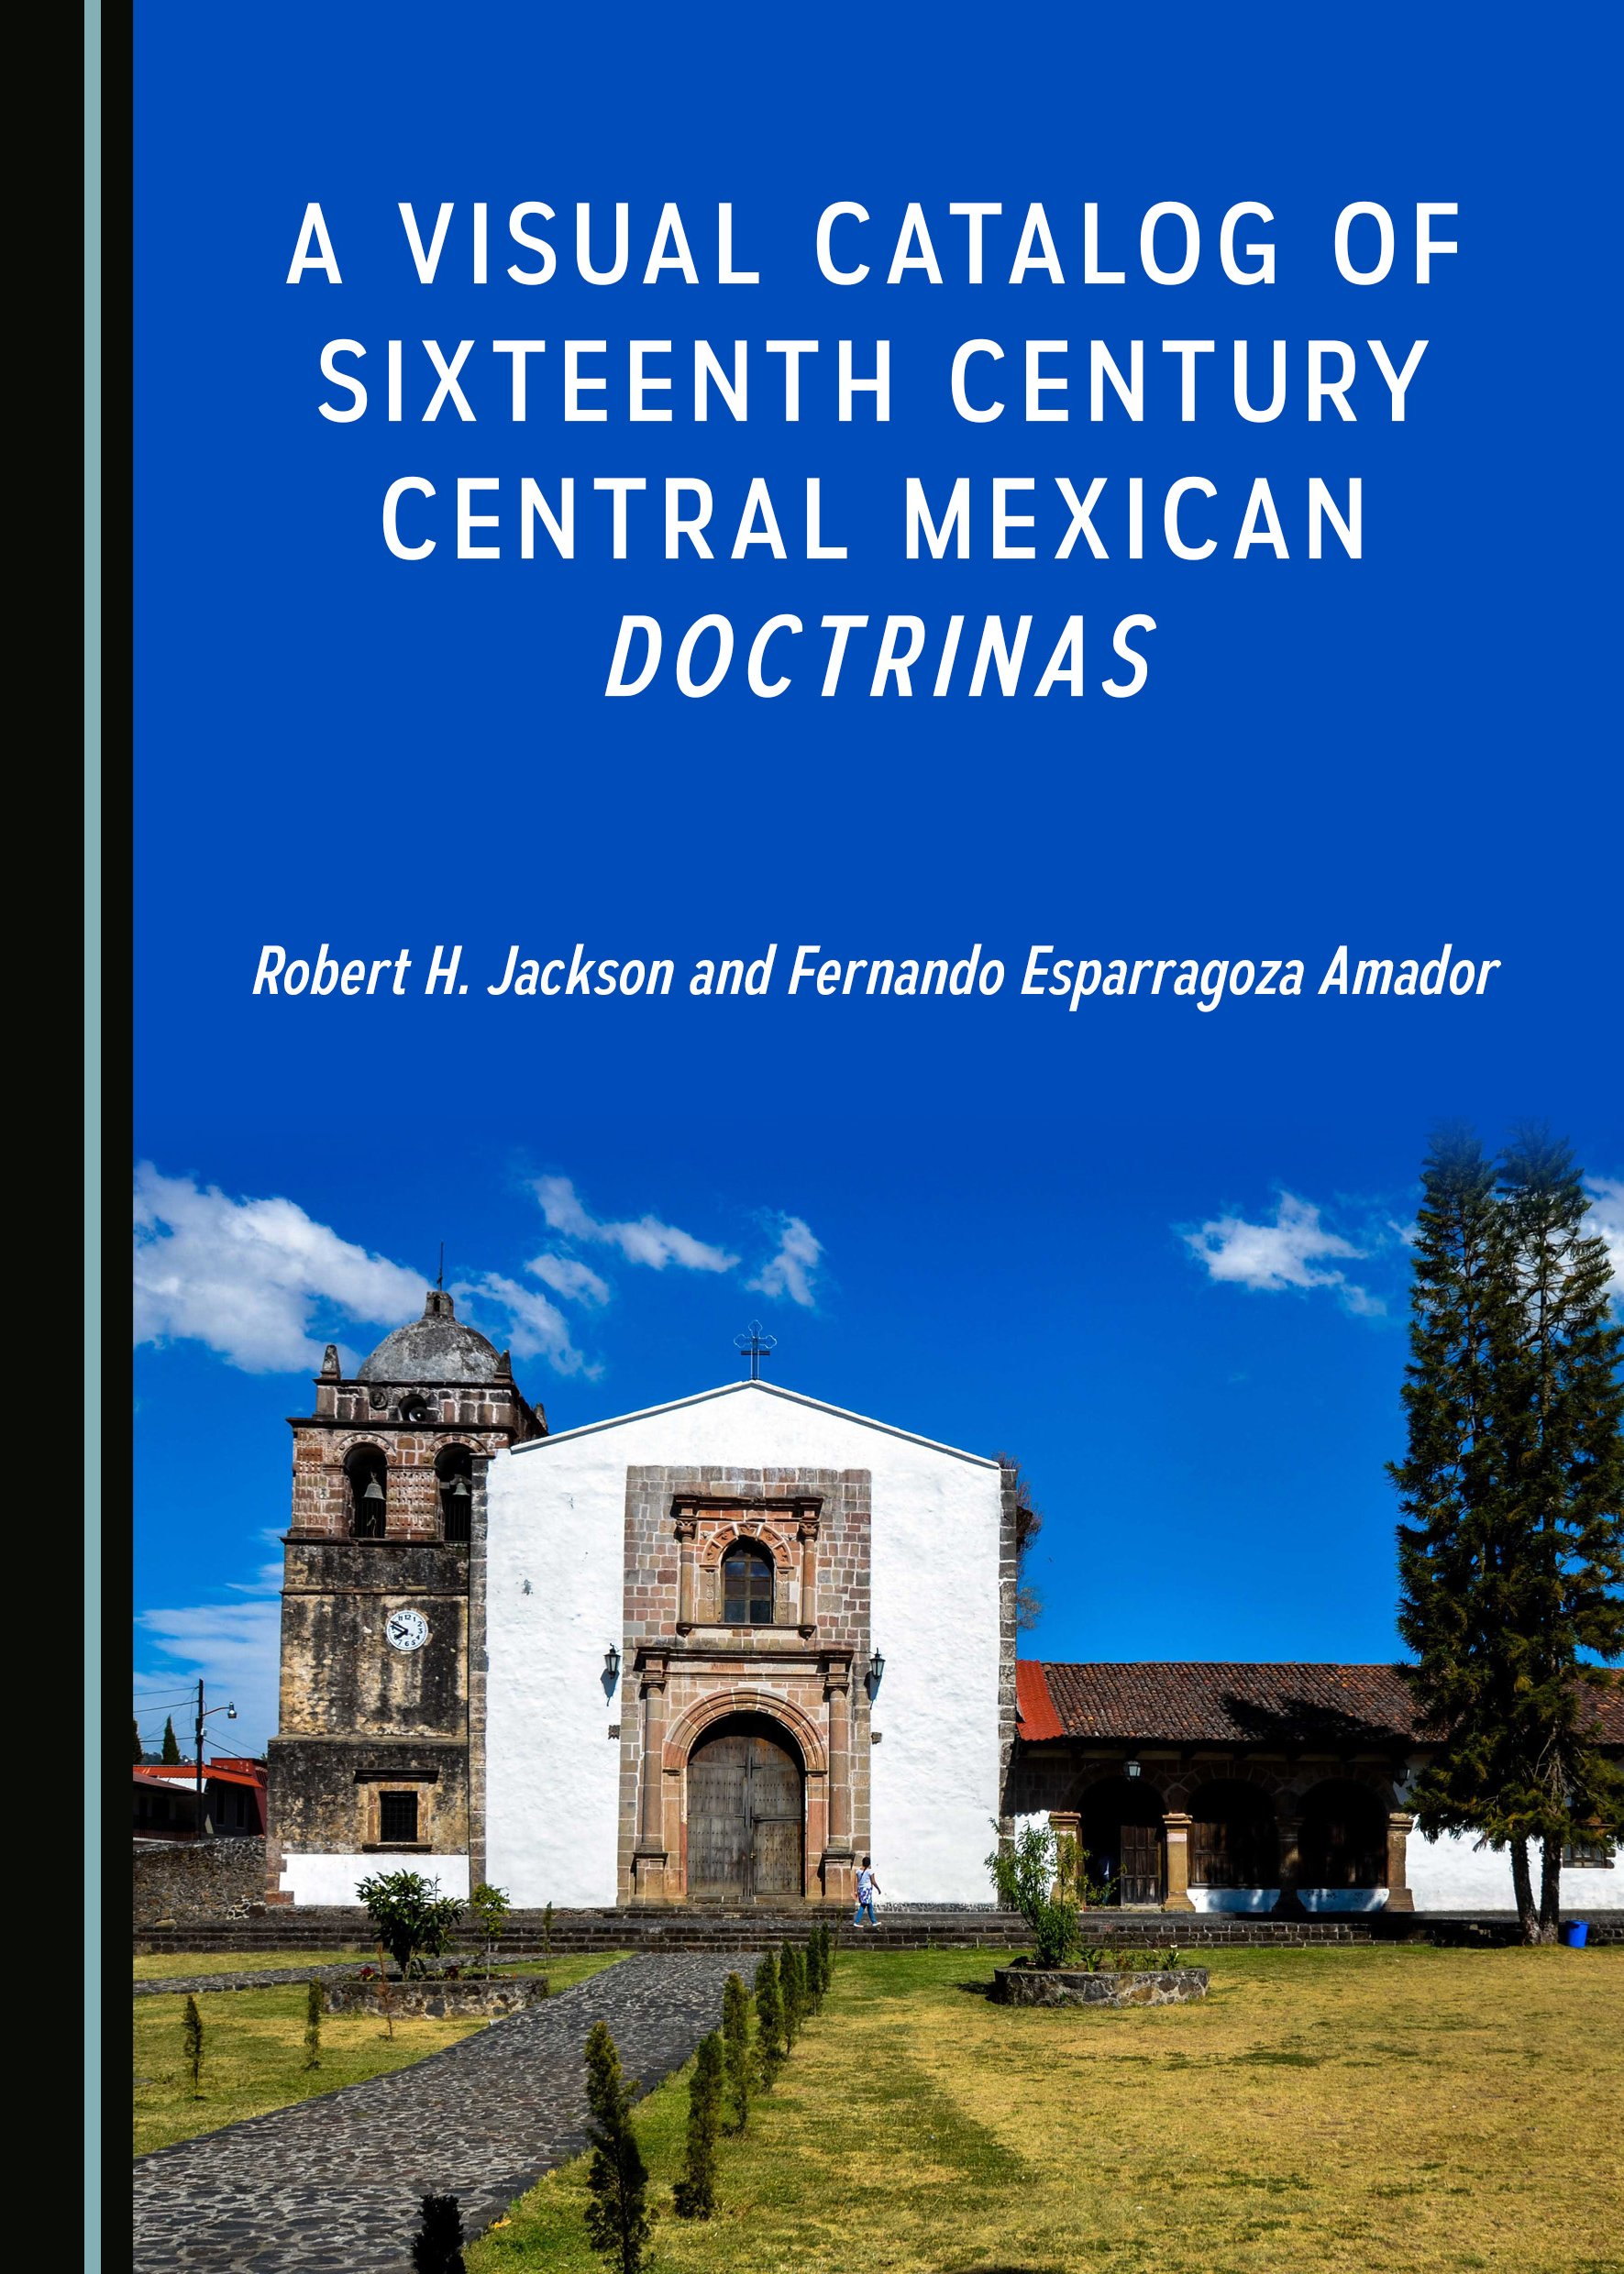 A Visual Catalog of Sixteenth Century Central Mexican Doctrinas